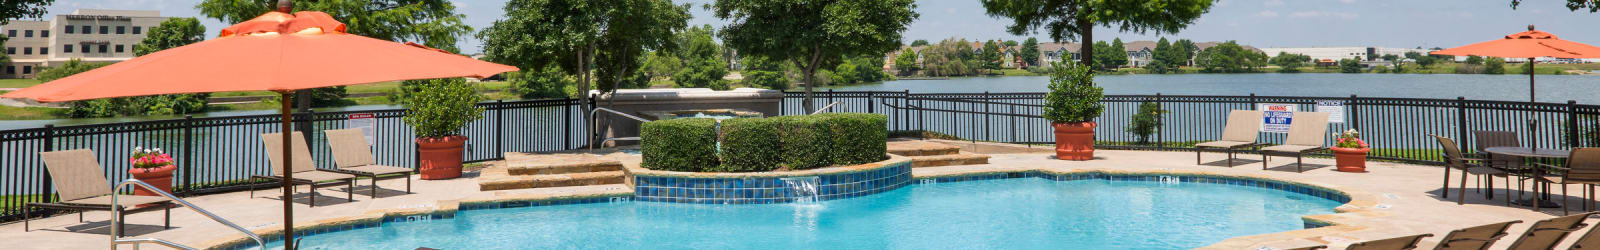 Guest suites at Crescent Cove at Lakepointe in Lewisville, Texas